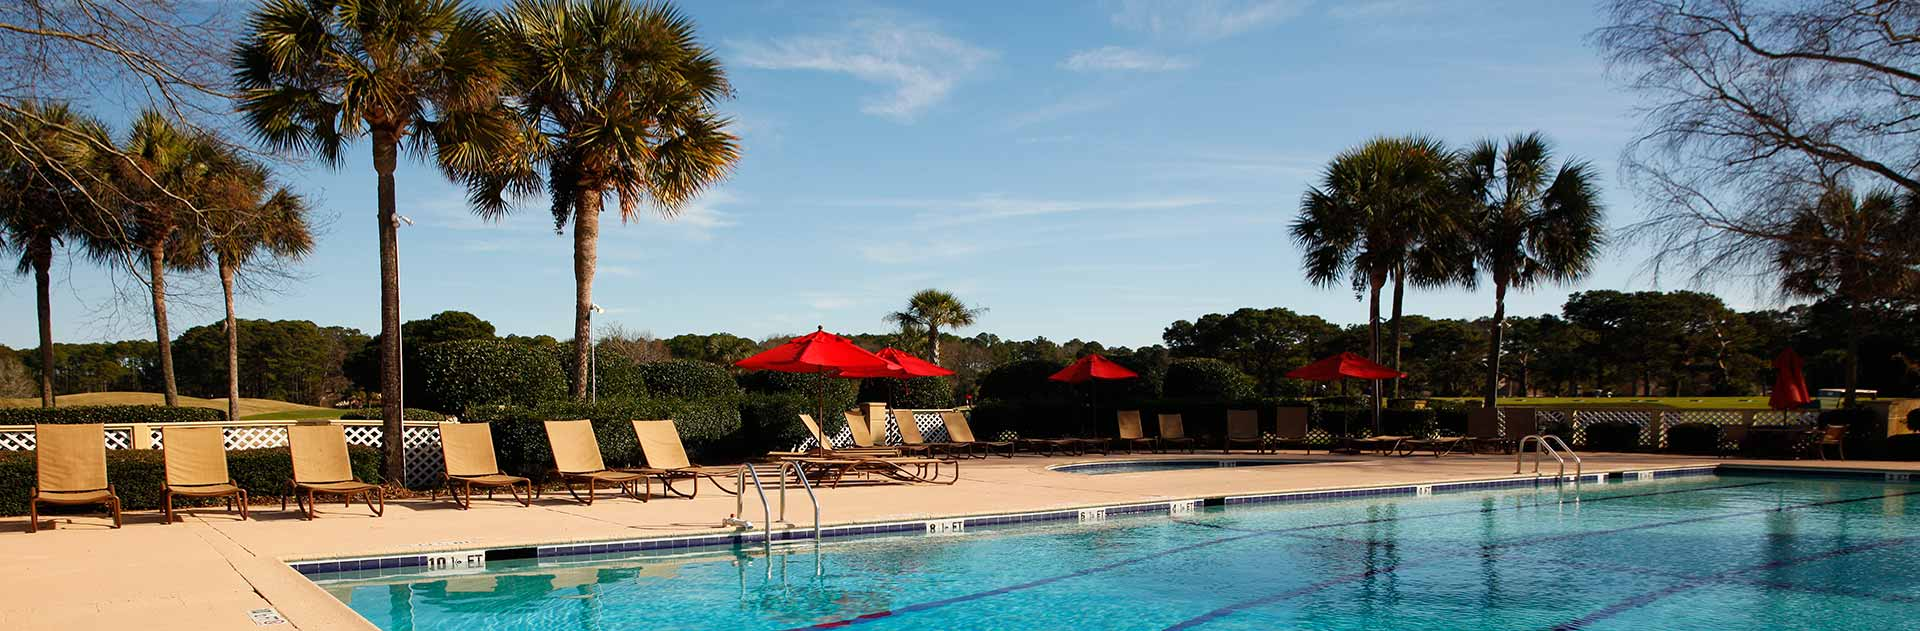 Hilton Head Plantation pool